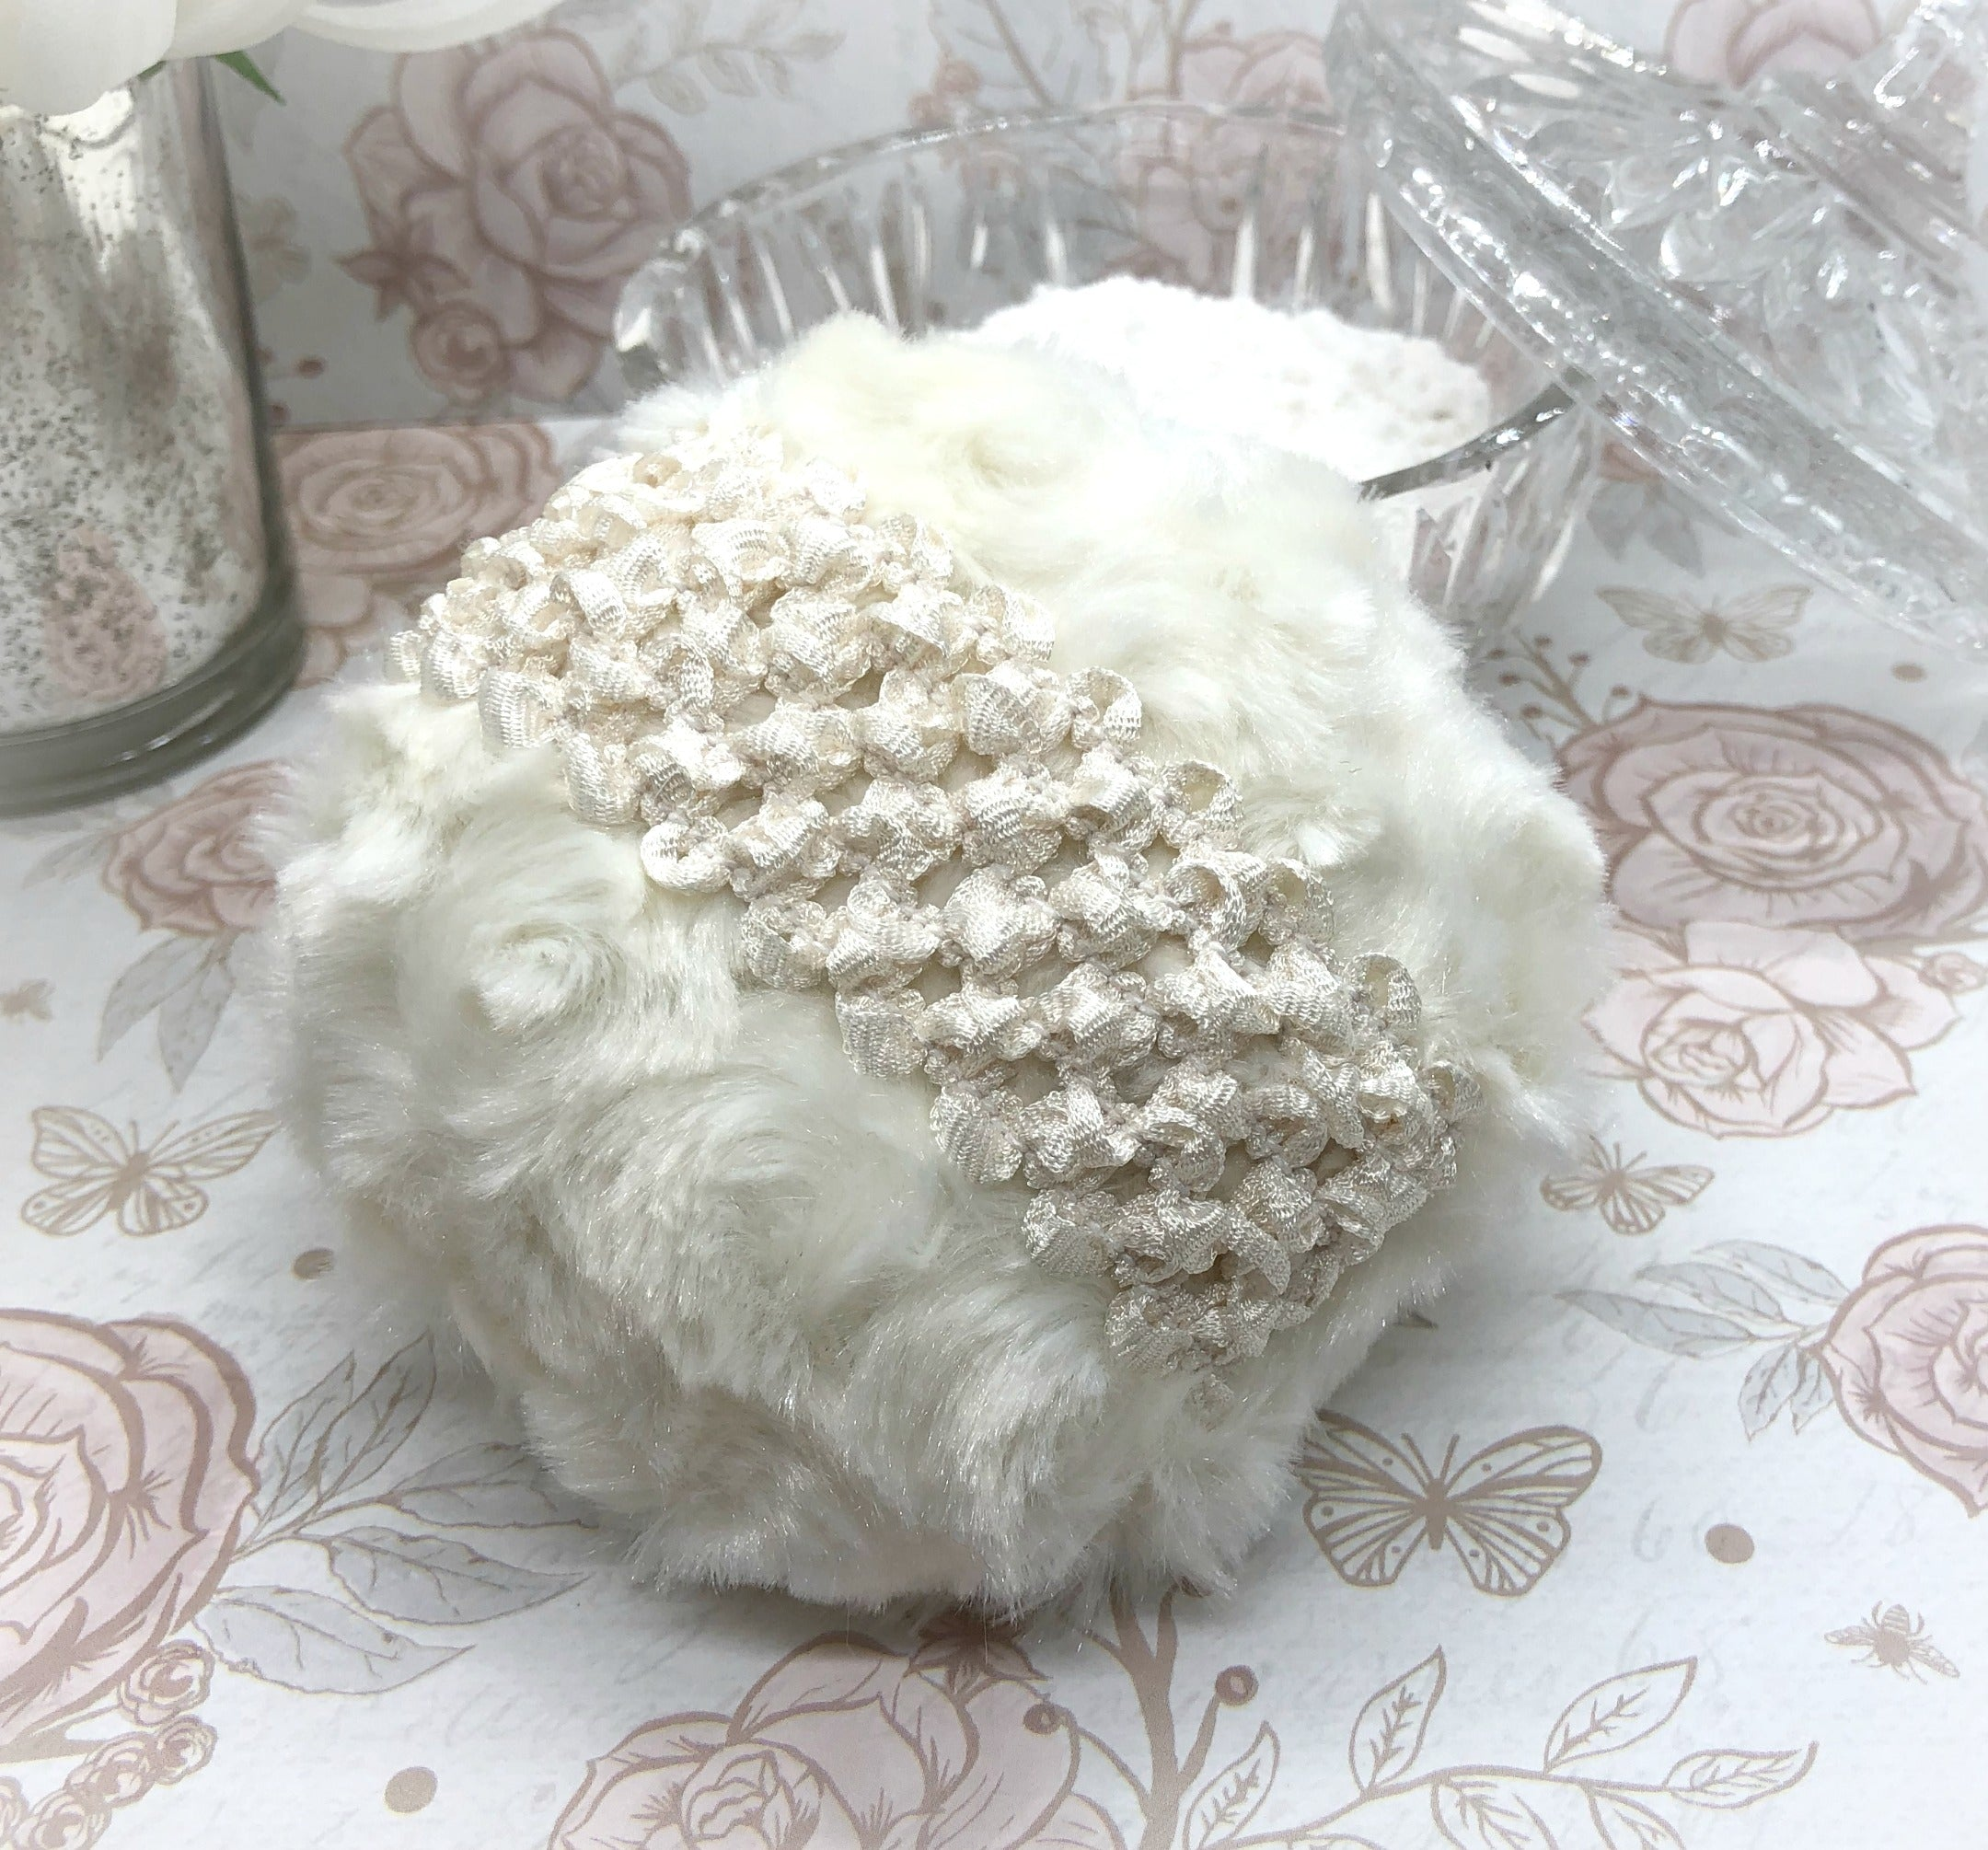 Powder Puff - 4 inch ivory cream body pouf - handmade in USA